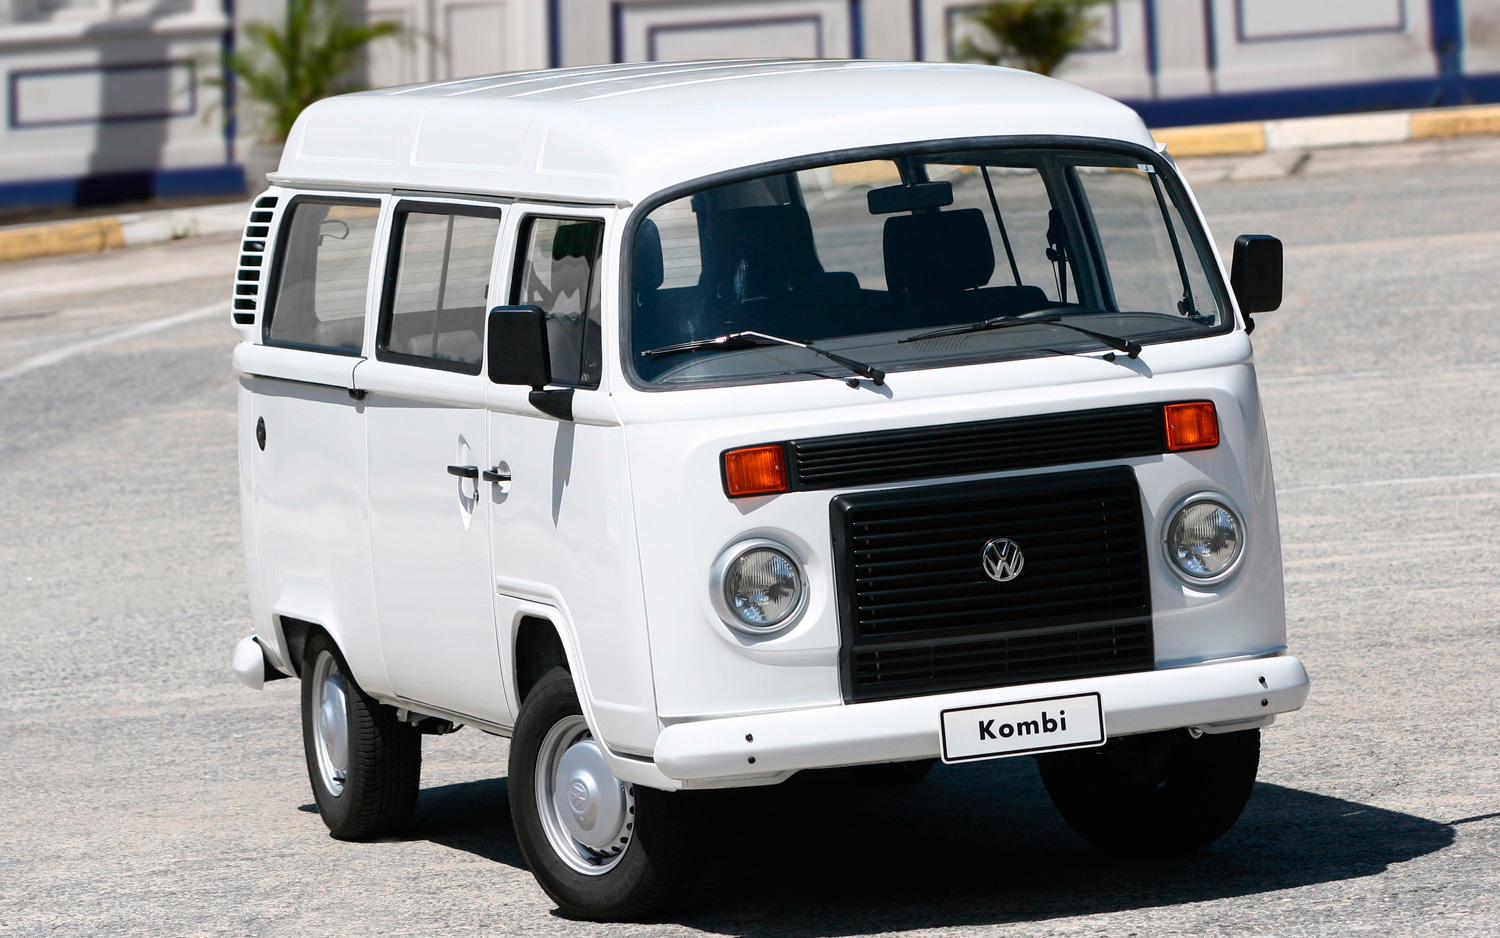 End Of An Era Volkswagen Kombi Van To Cease Production After 63